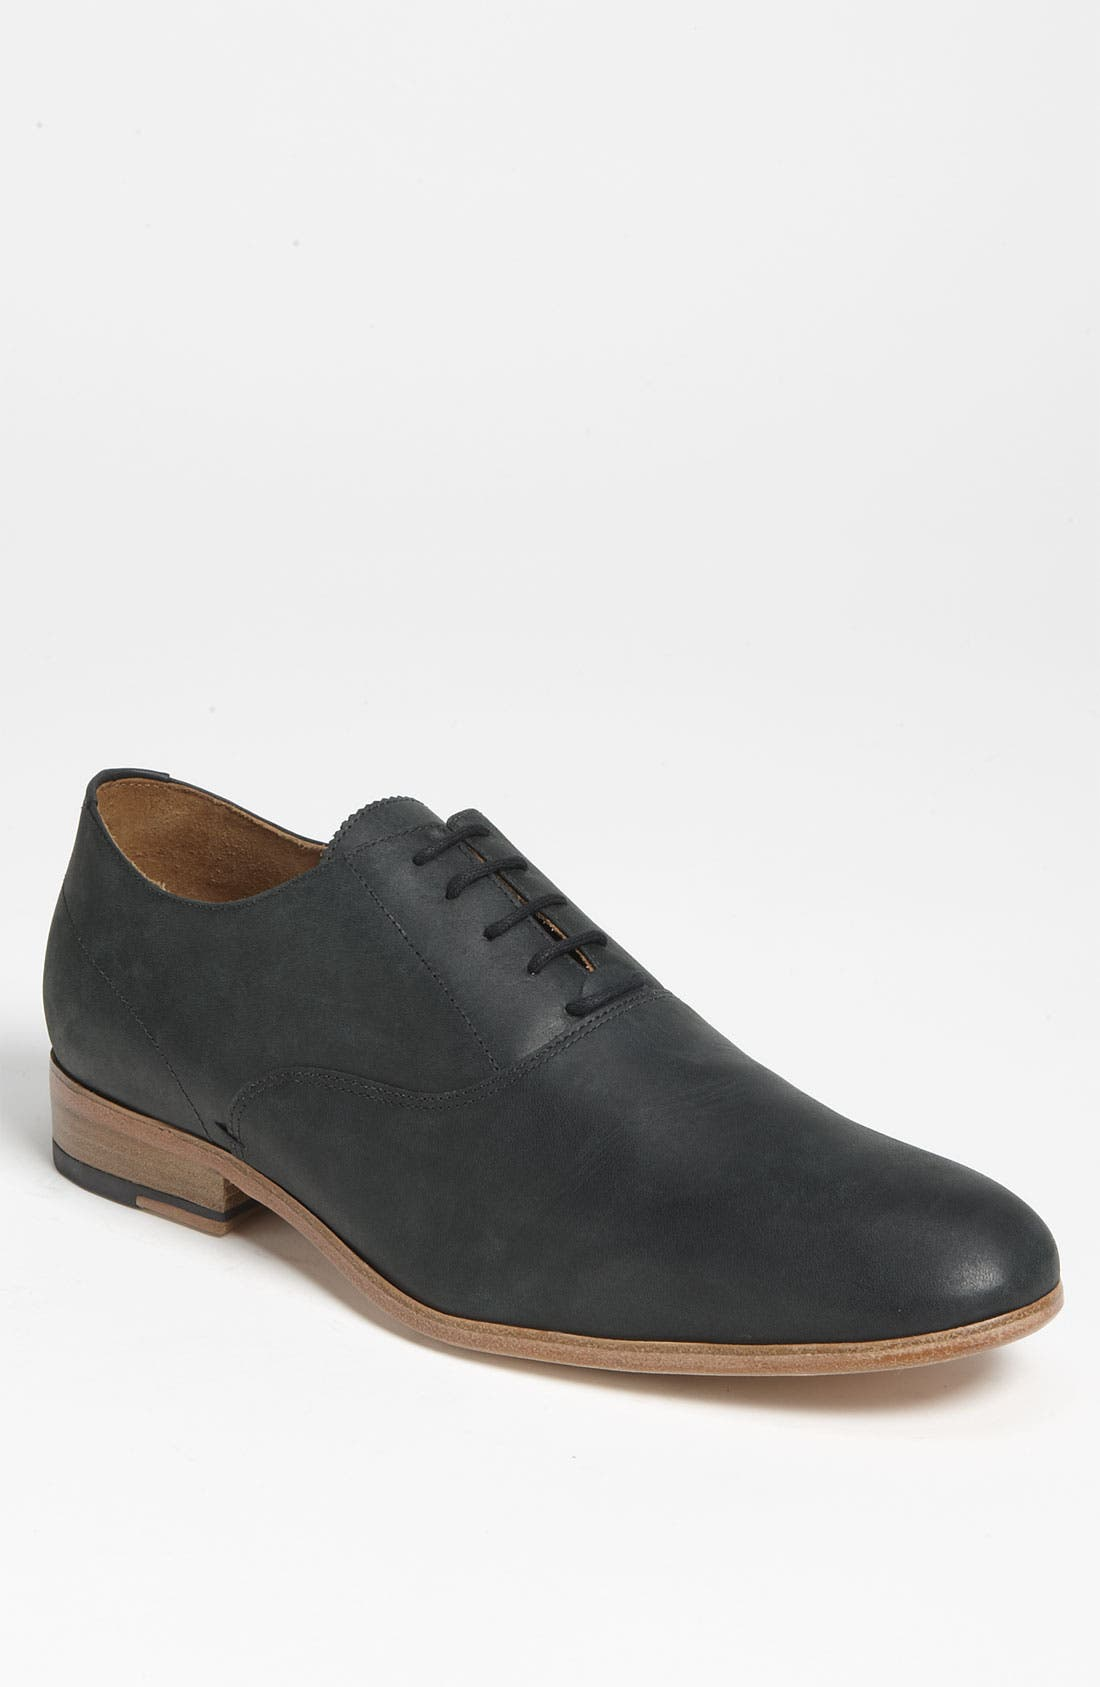 Alternate Image 1 Selected - Shipley & Halmos 'Lucien' Oxford